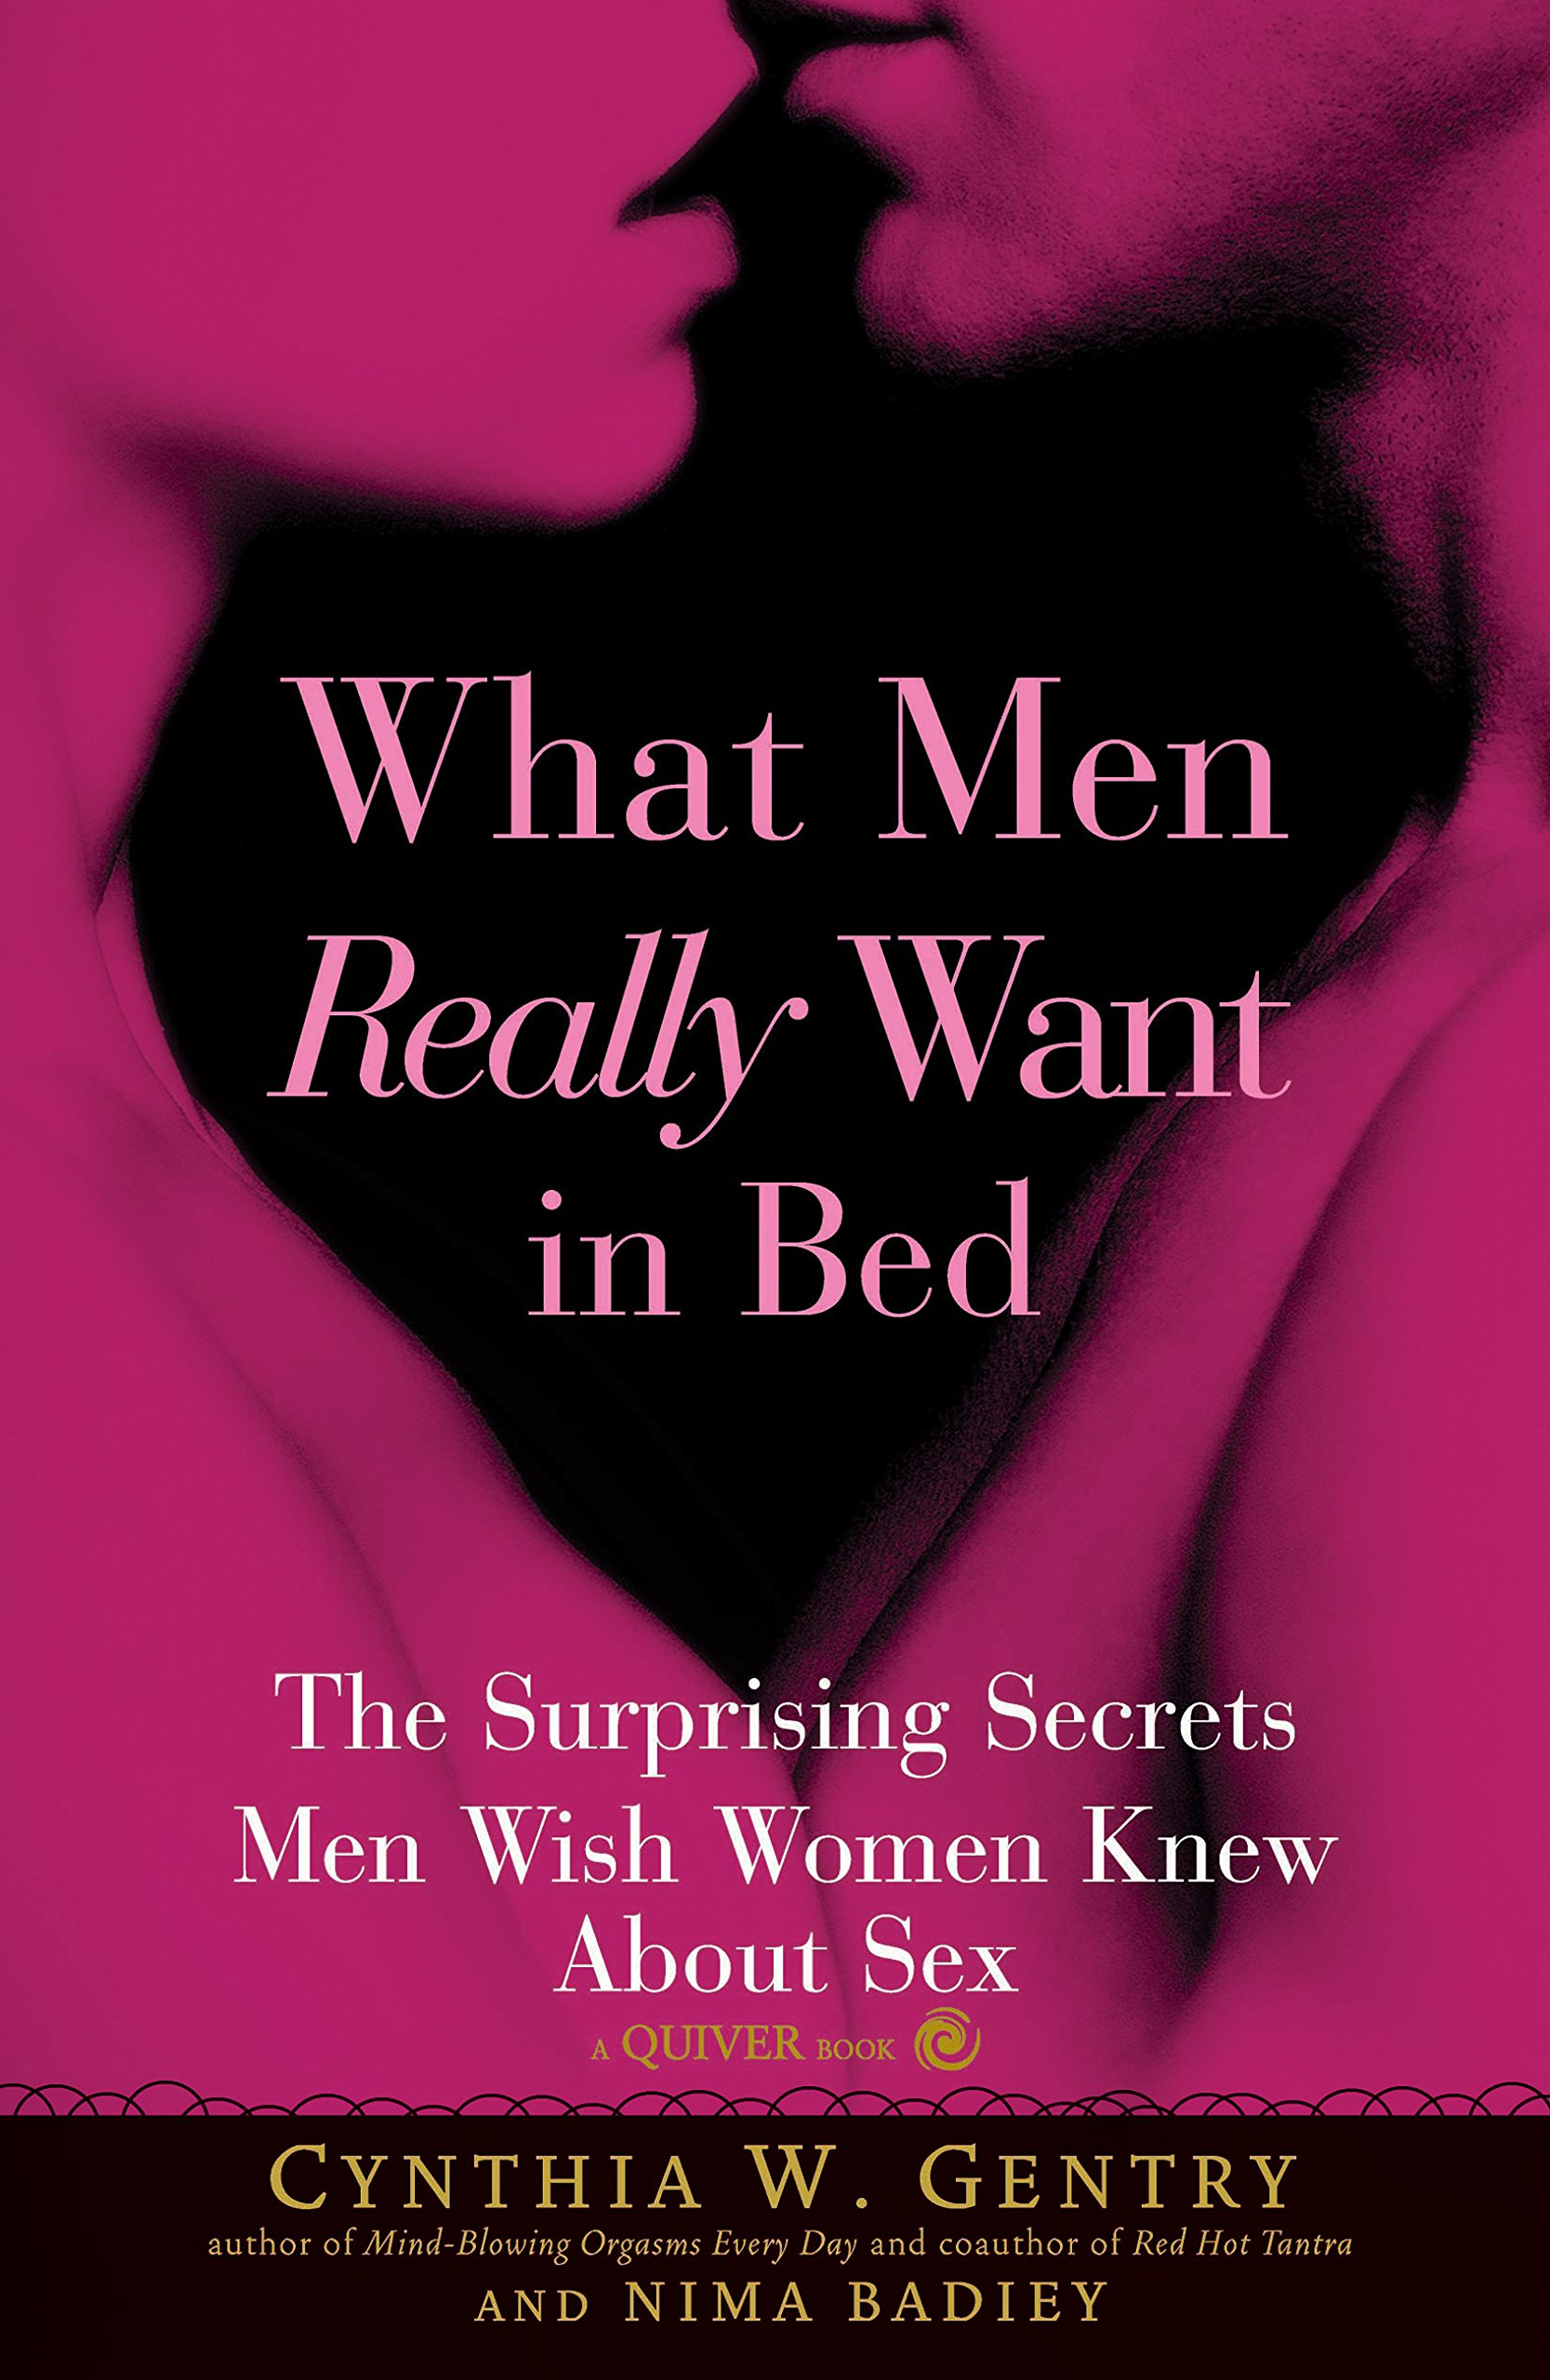 What Men Expect From Women In Bed